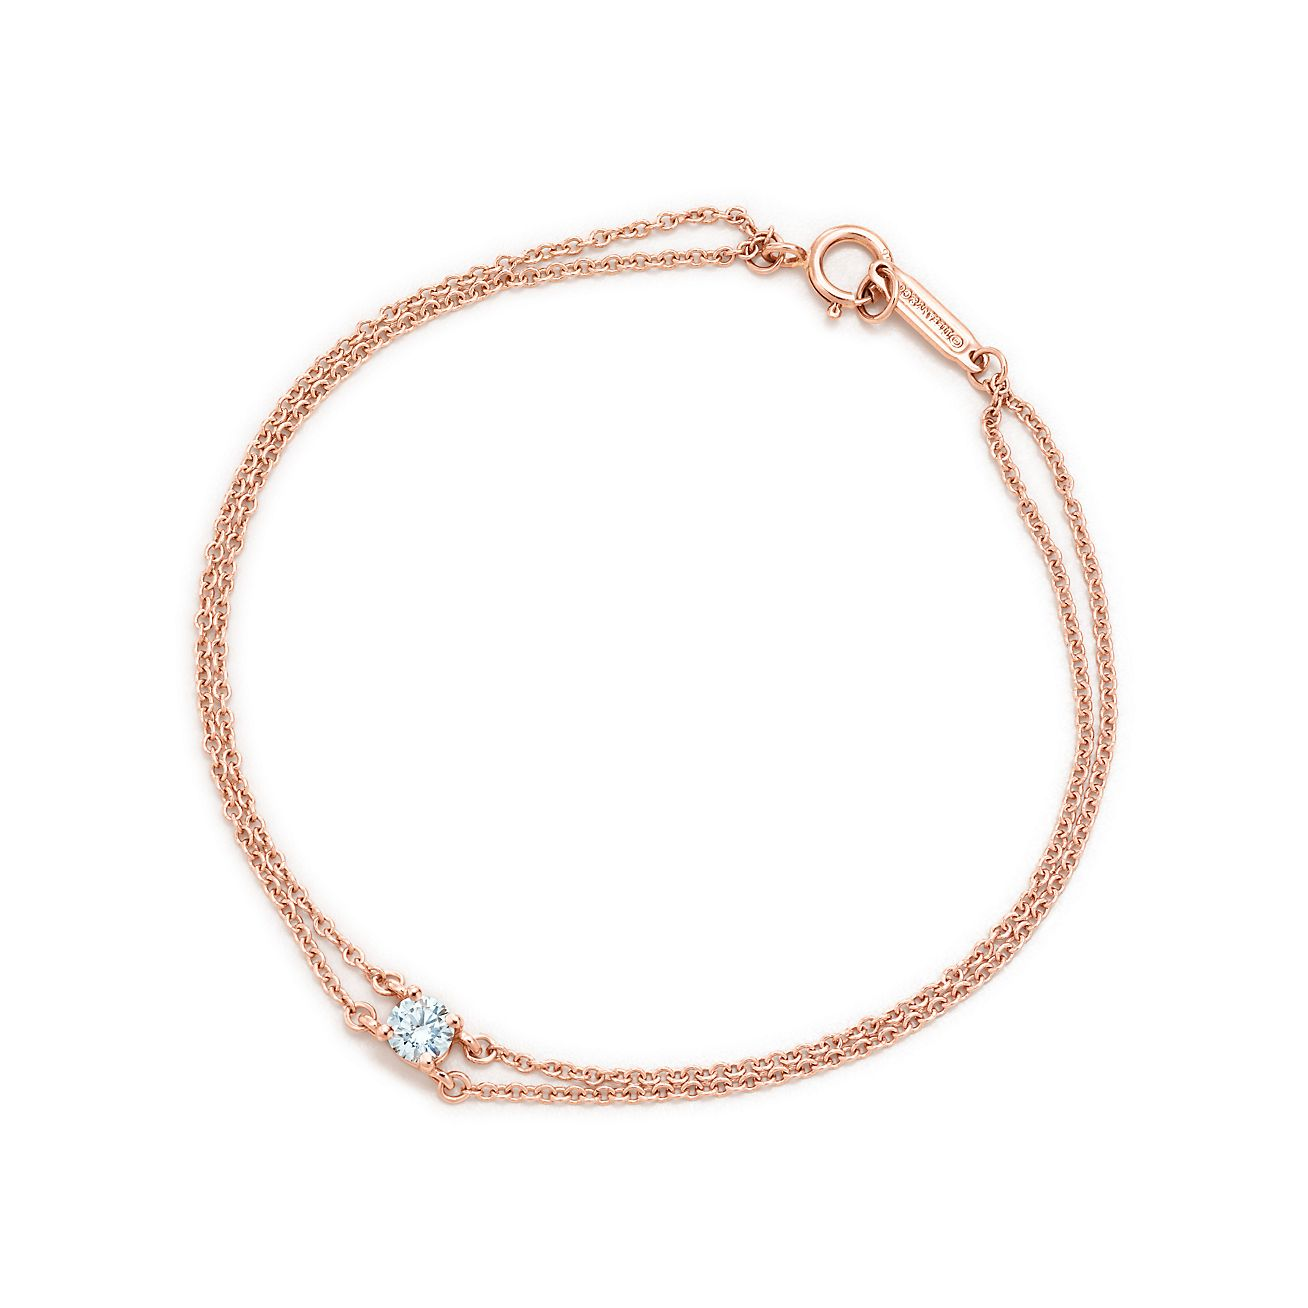 Tiffany solitaire diamond bracelet in 18k rose gold tiffany co tiffany solitaire diamond bracelet aloadofball